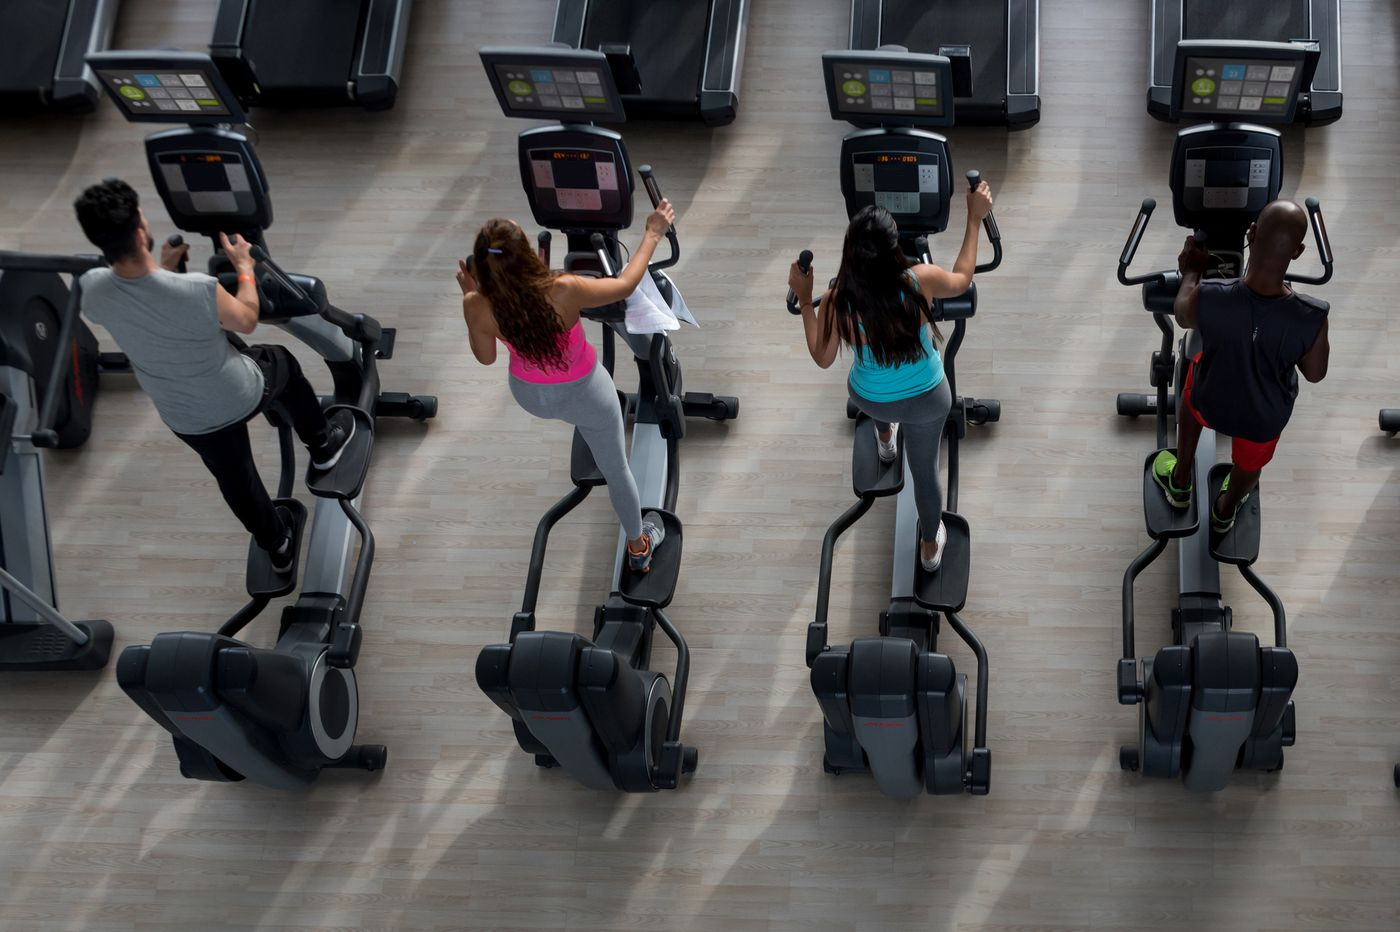 Treadmill vs. elliptical: Which machine is best for exercise goals, weight loss?